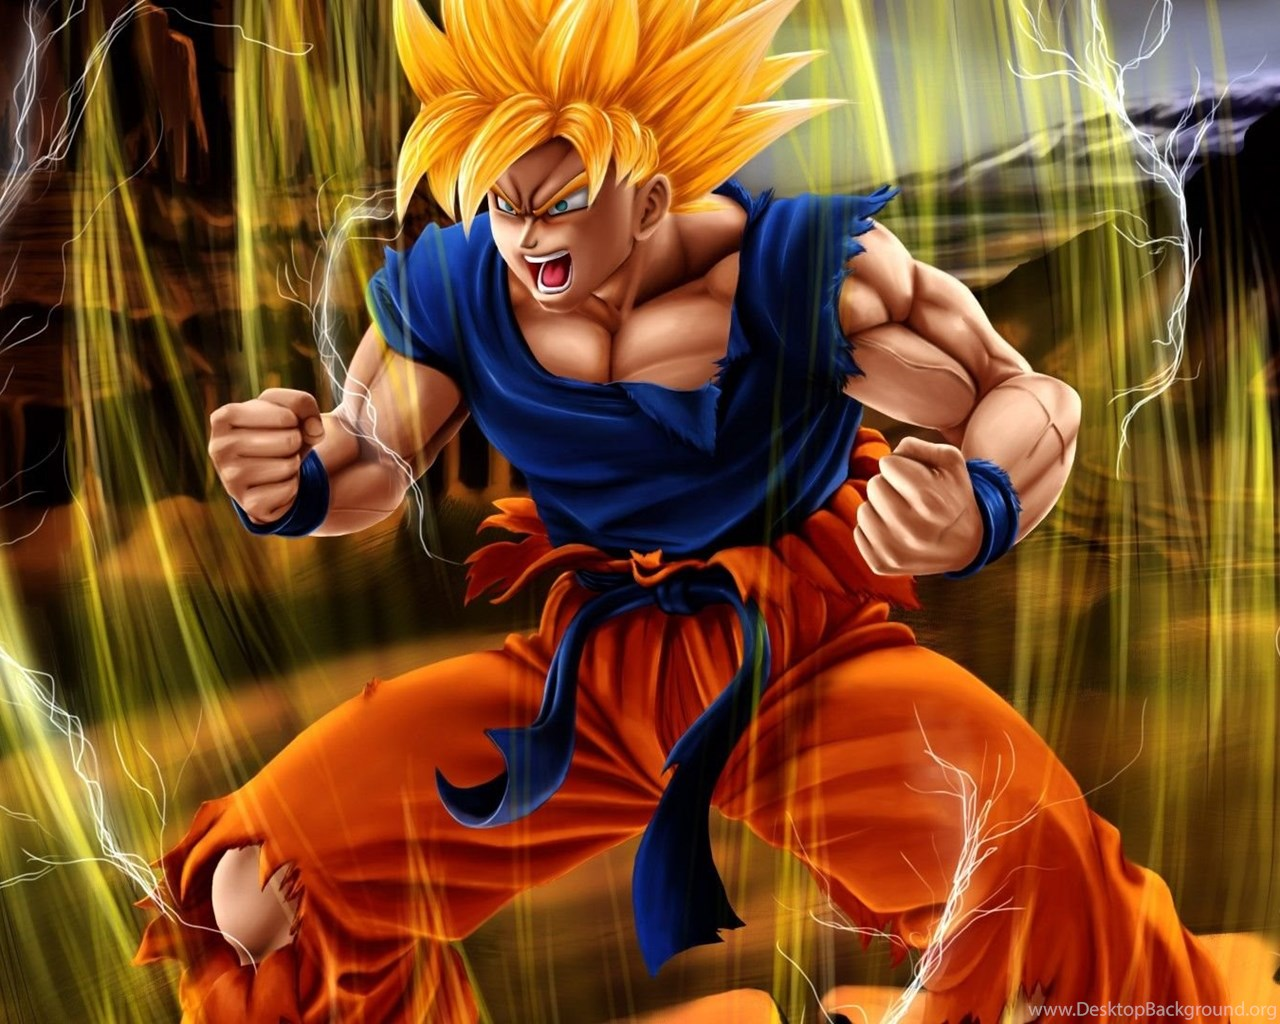 Dragon Ball Z Gt 1920x1080 Hd Wallpapers And Free Stock Photo